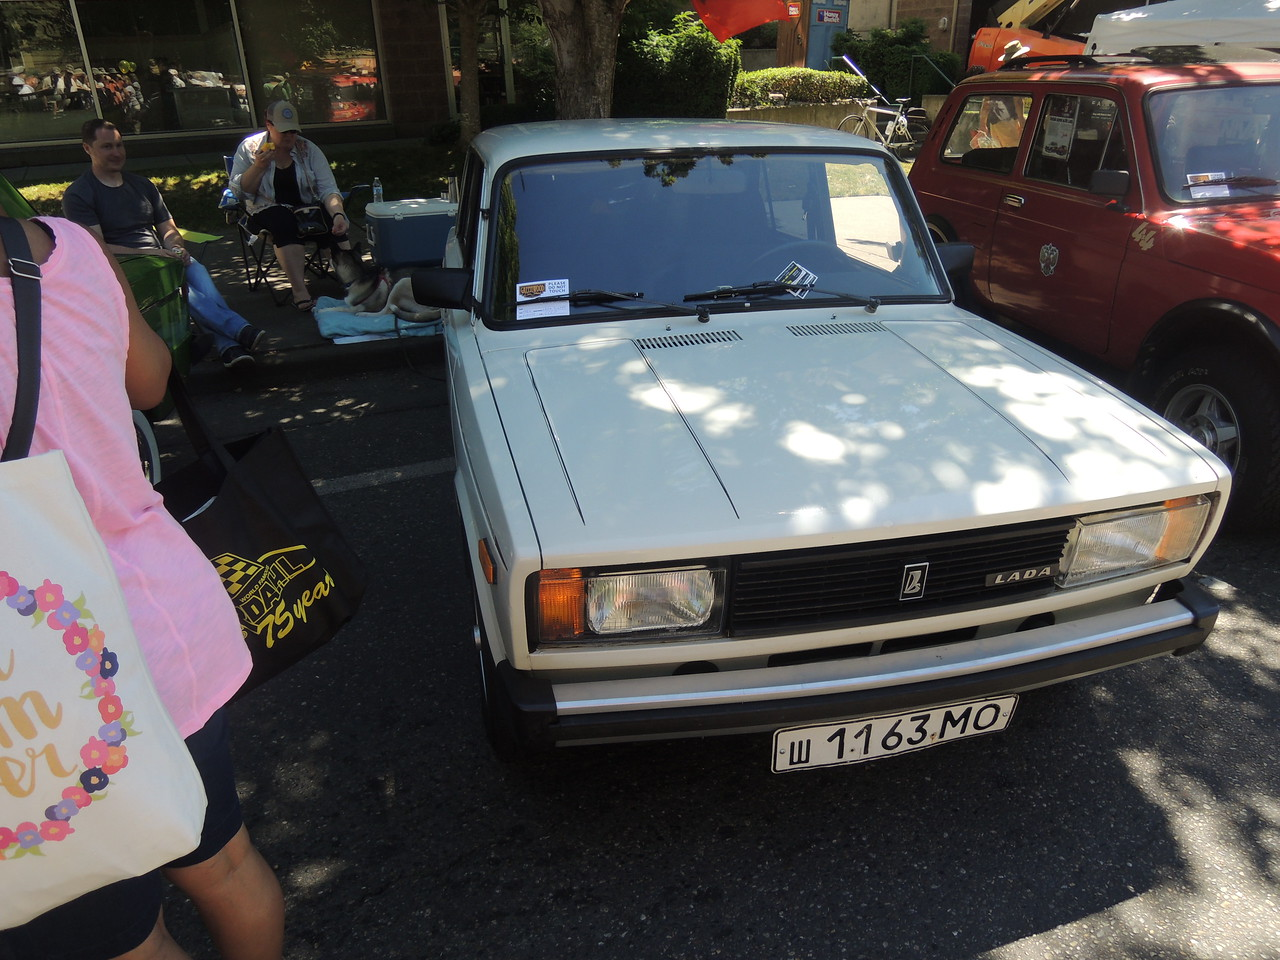 Another Lada.